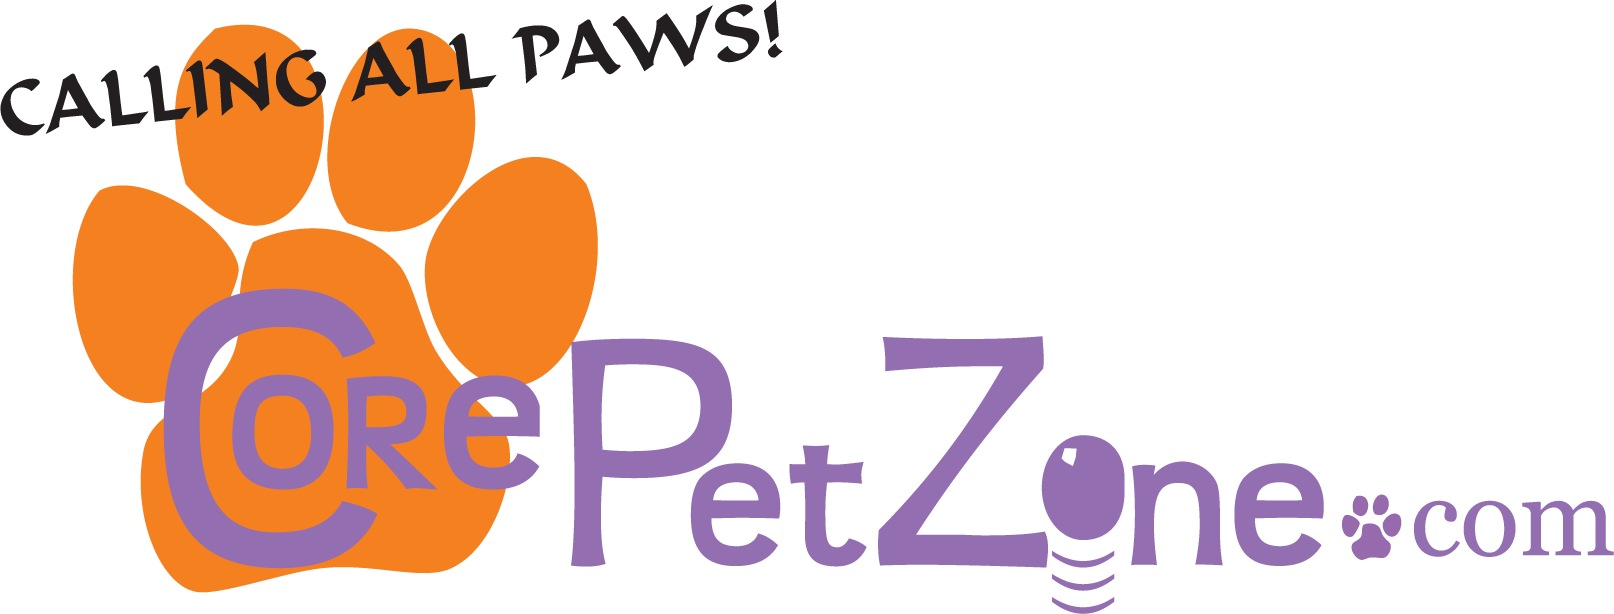 Core Pet Zone